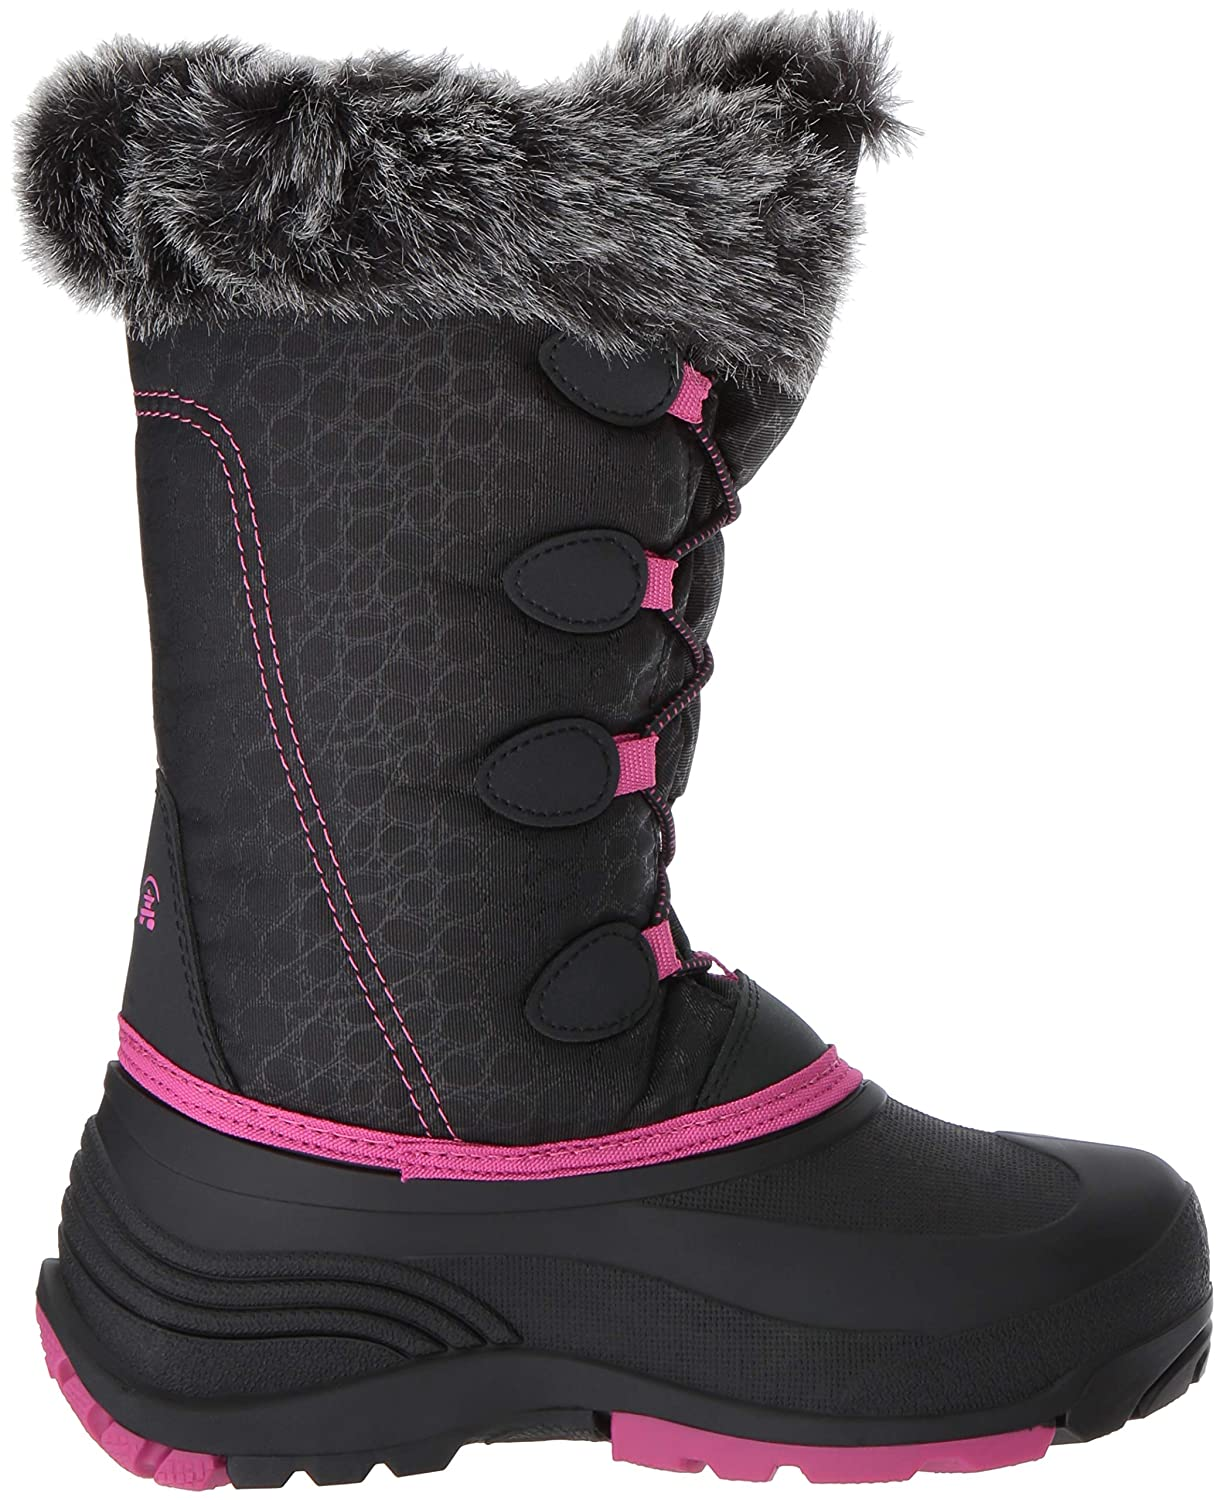 Girl/'s Youth Kamik Snow Gypsy Black//Navy//Pink Winter Boots C18 New!